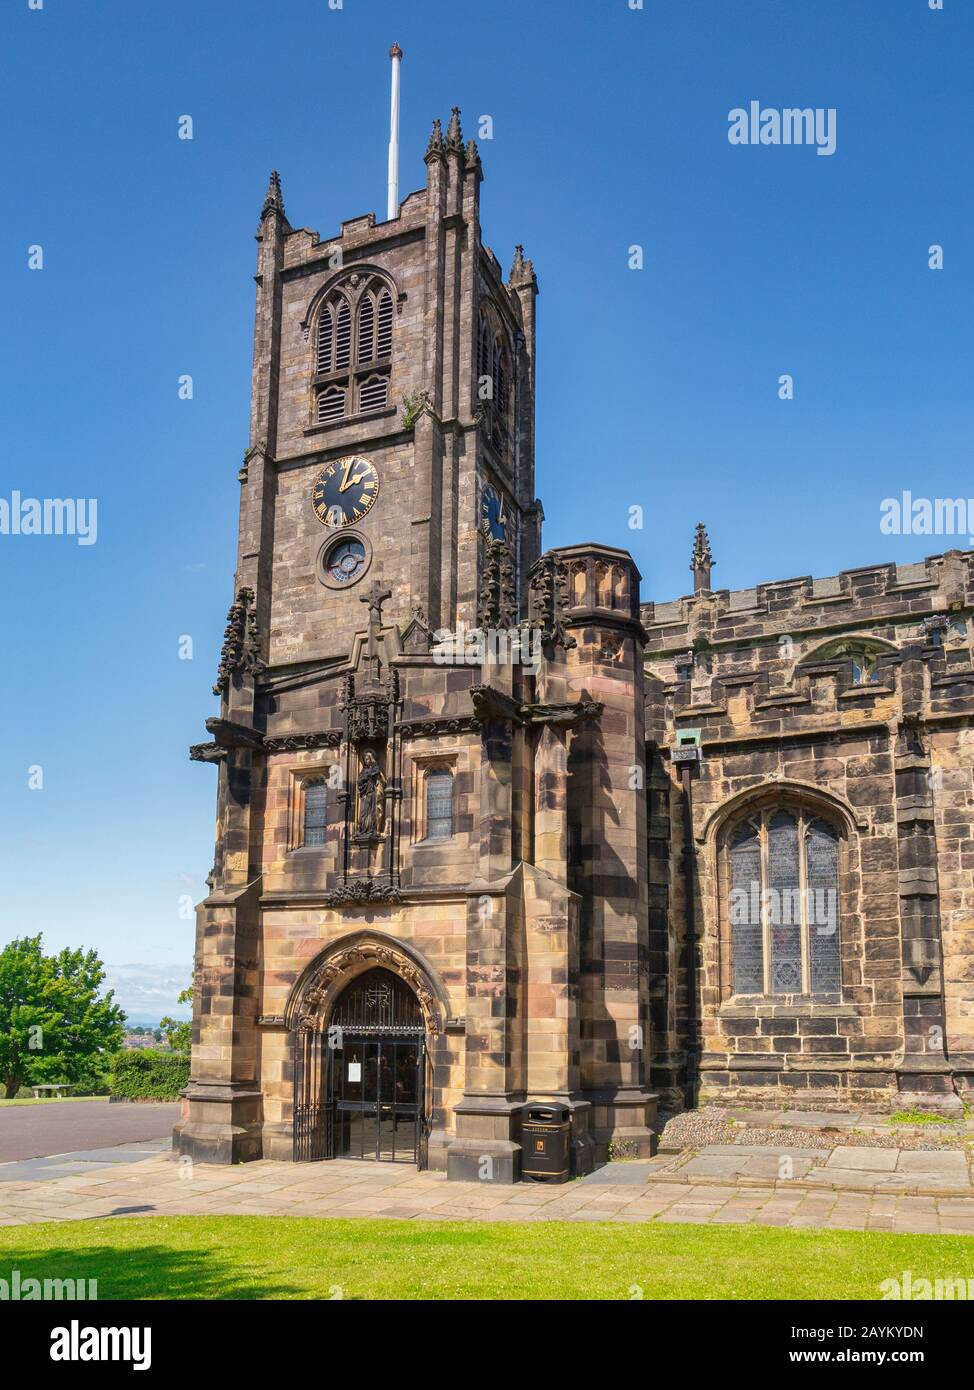 Lancaster Priory, the Priory Church of St Mary, Lancashire, UK Stock Photo